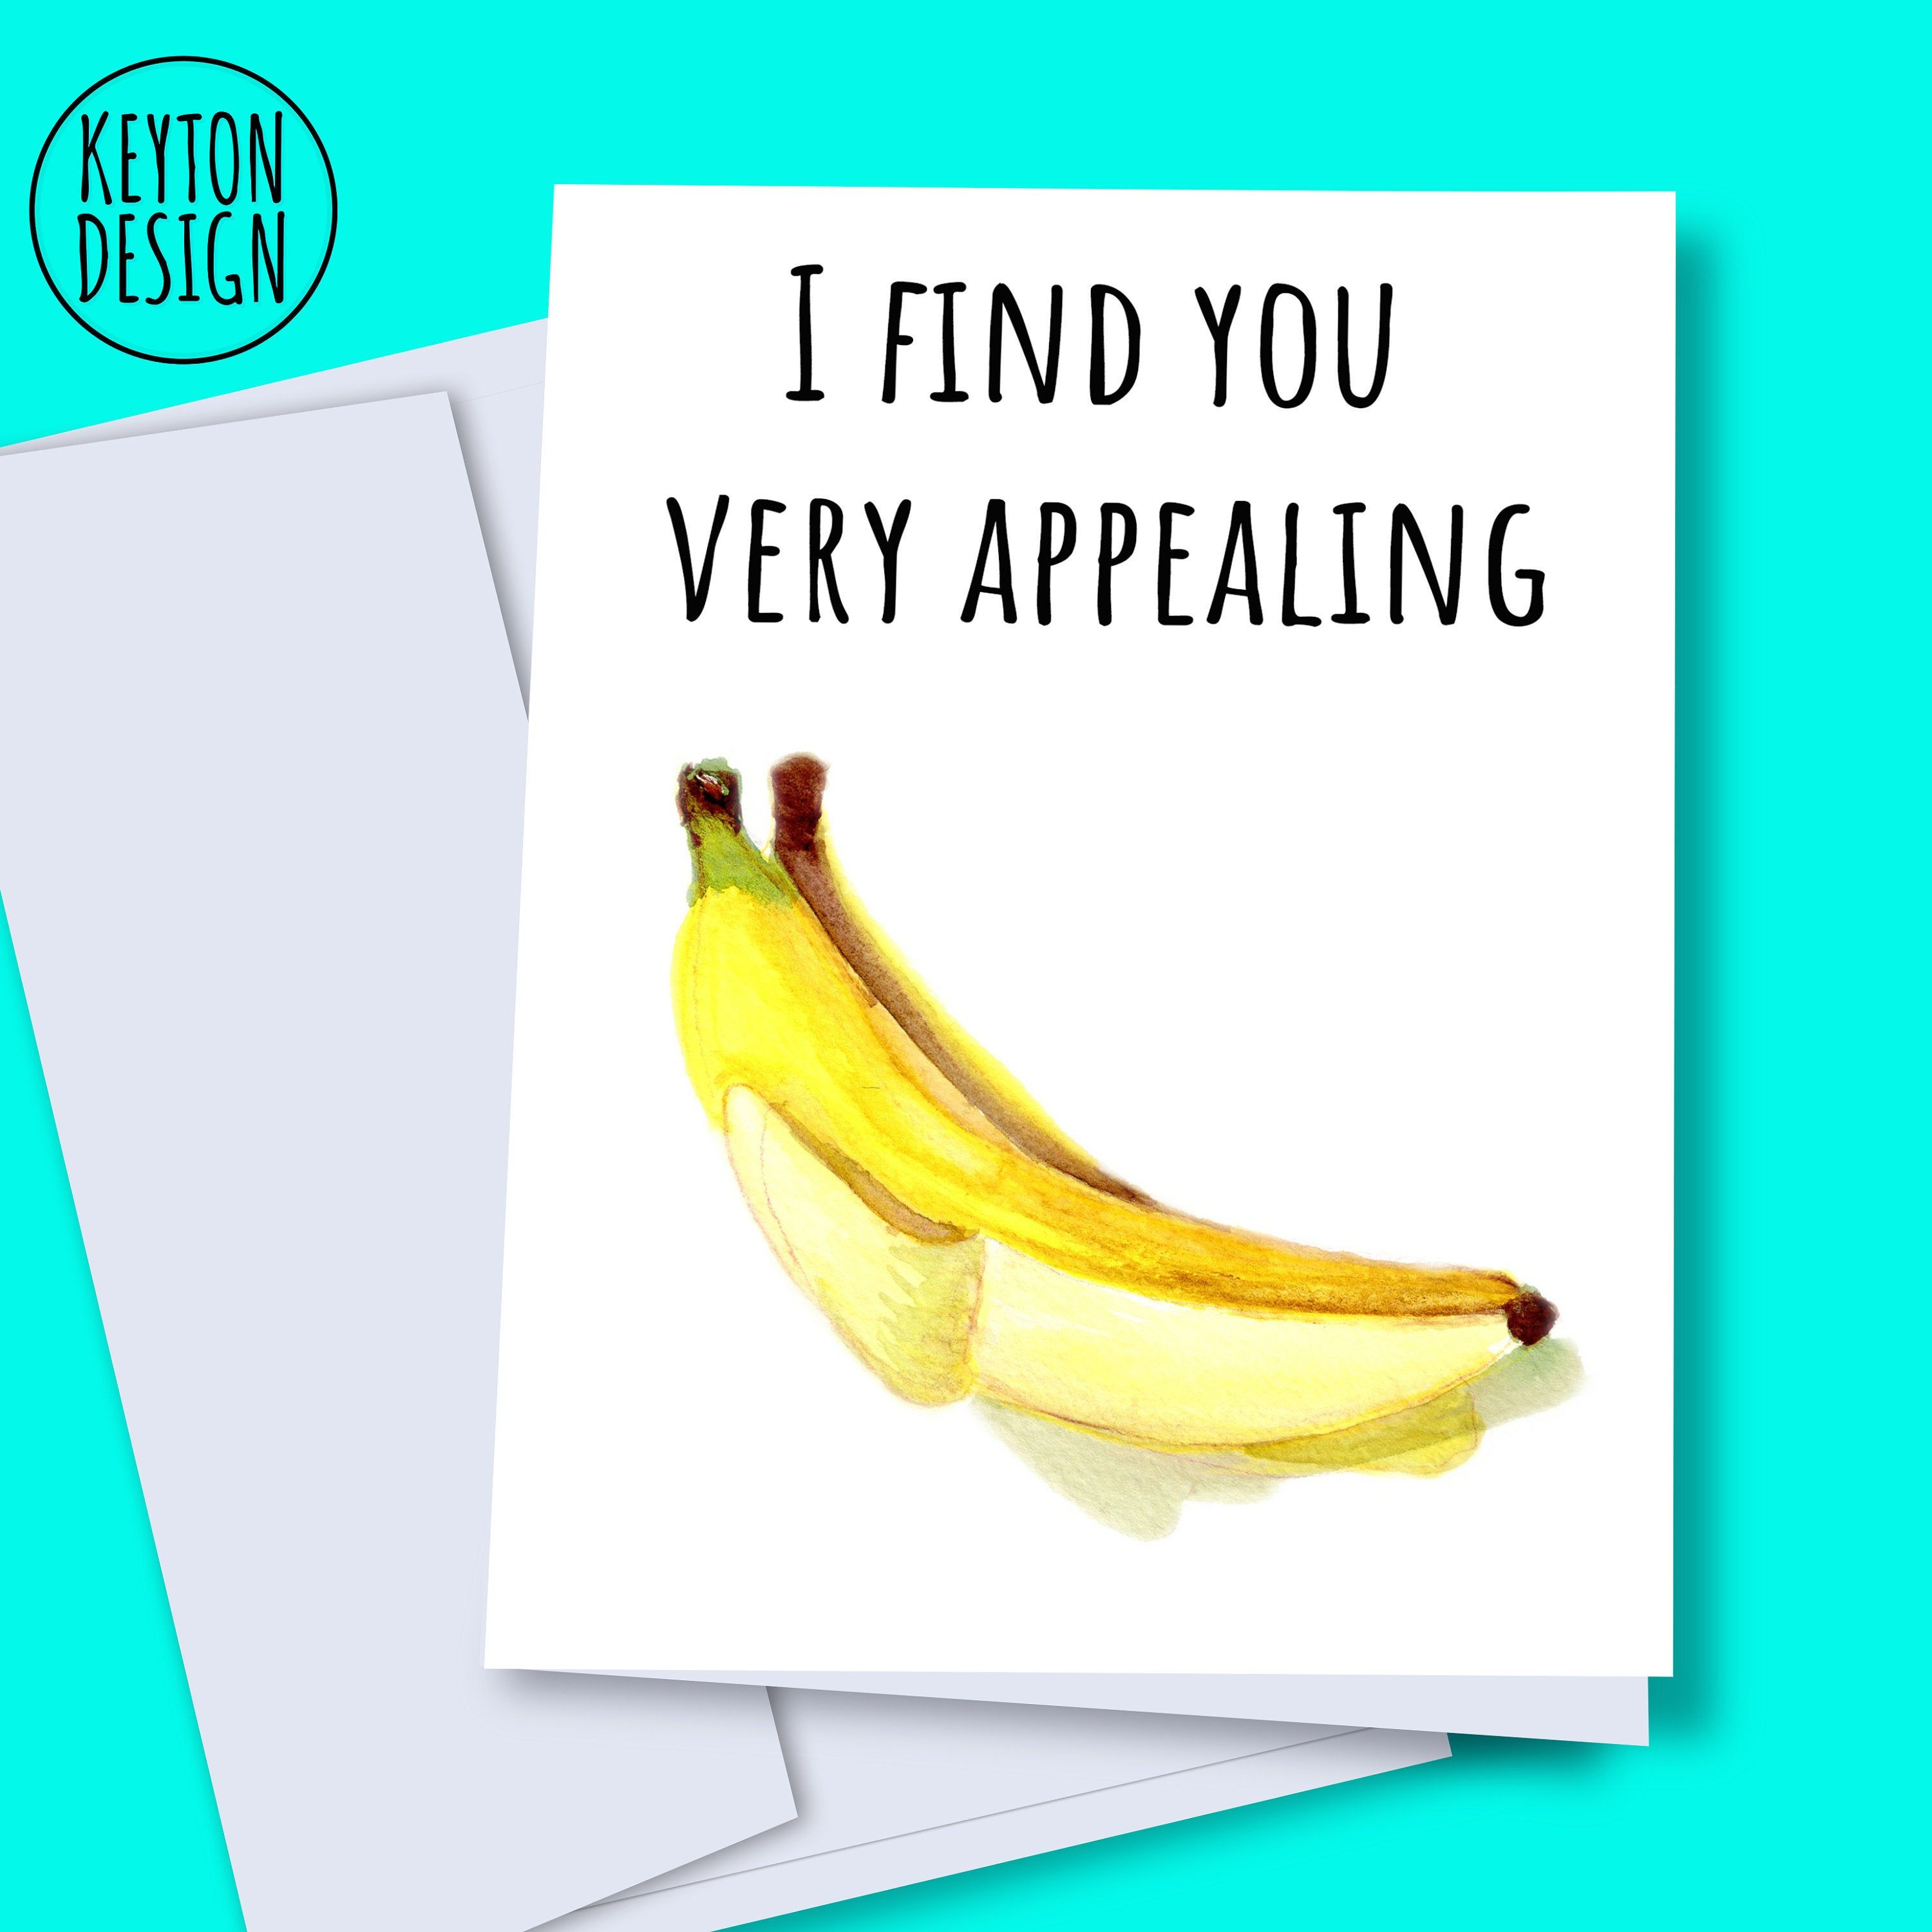 Instant Download Banana Card Printable Romantic Card Etsy Romantic Cards Anniversary Cards Funny Anniversary Cards